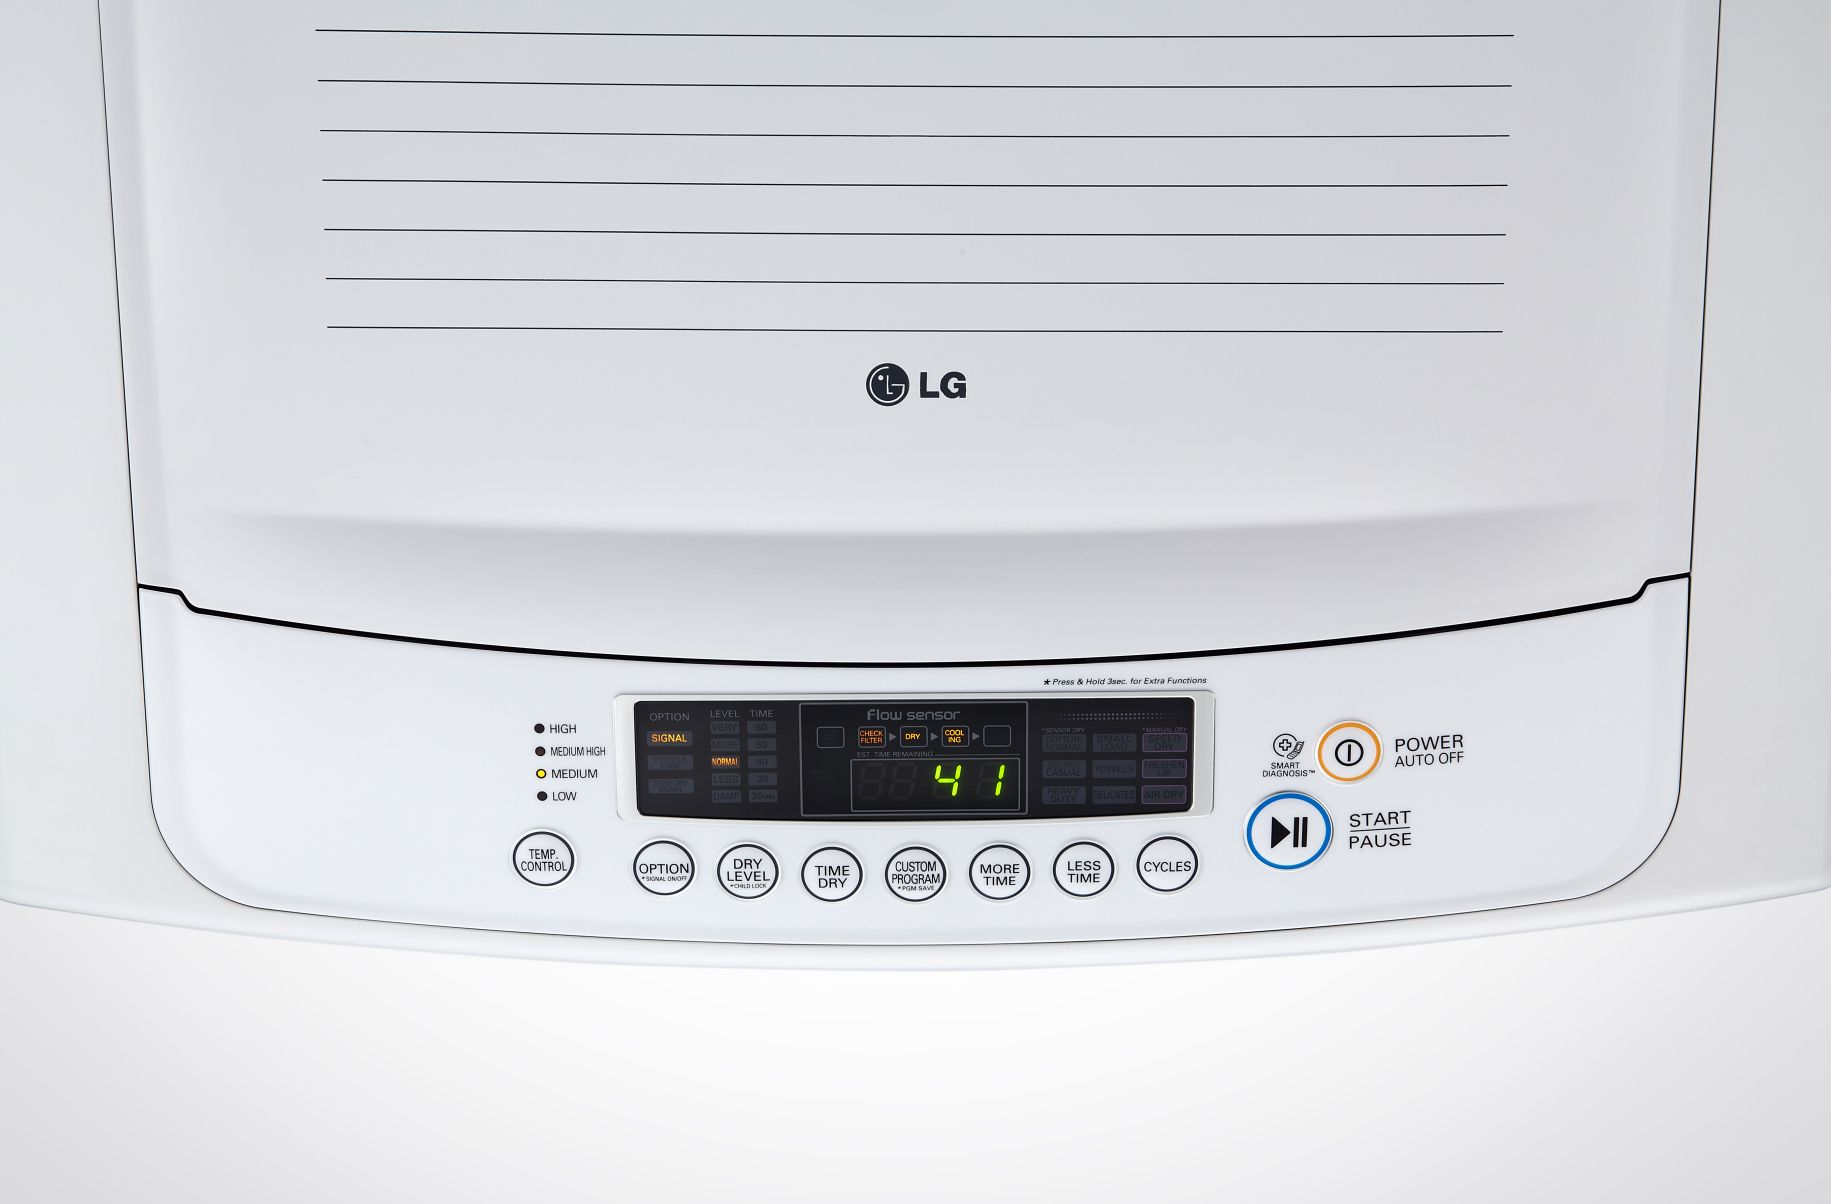 LG DLG1102W 7.3 cu. ft. Gas Dryer - White